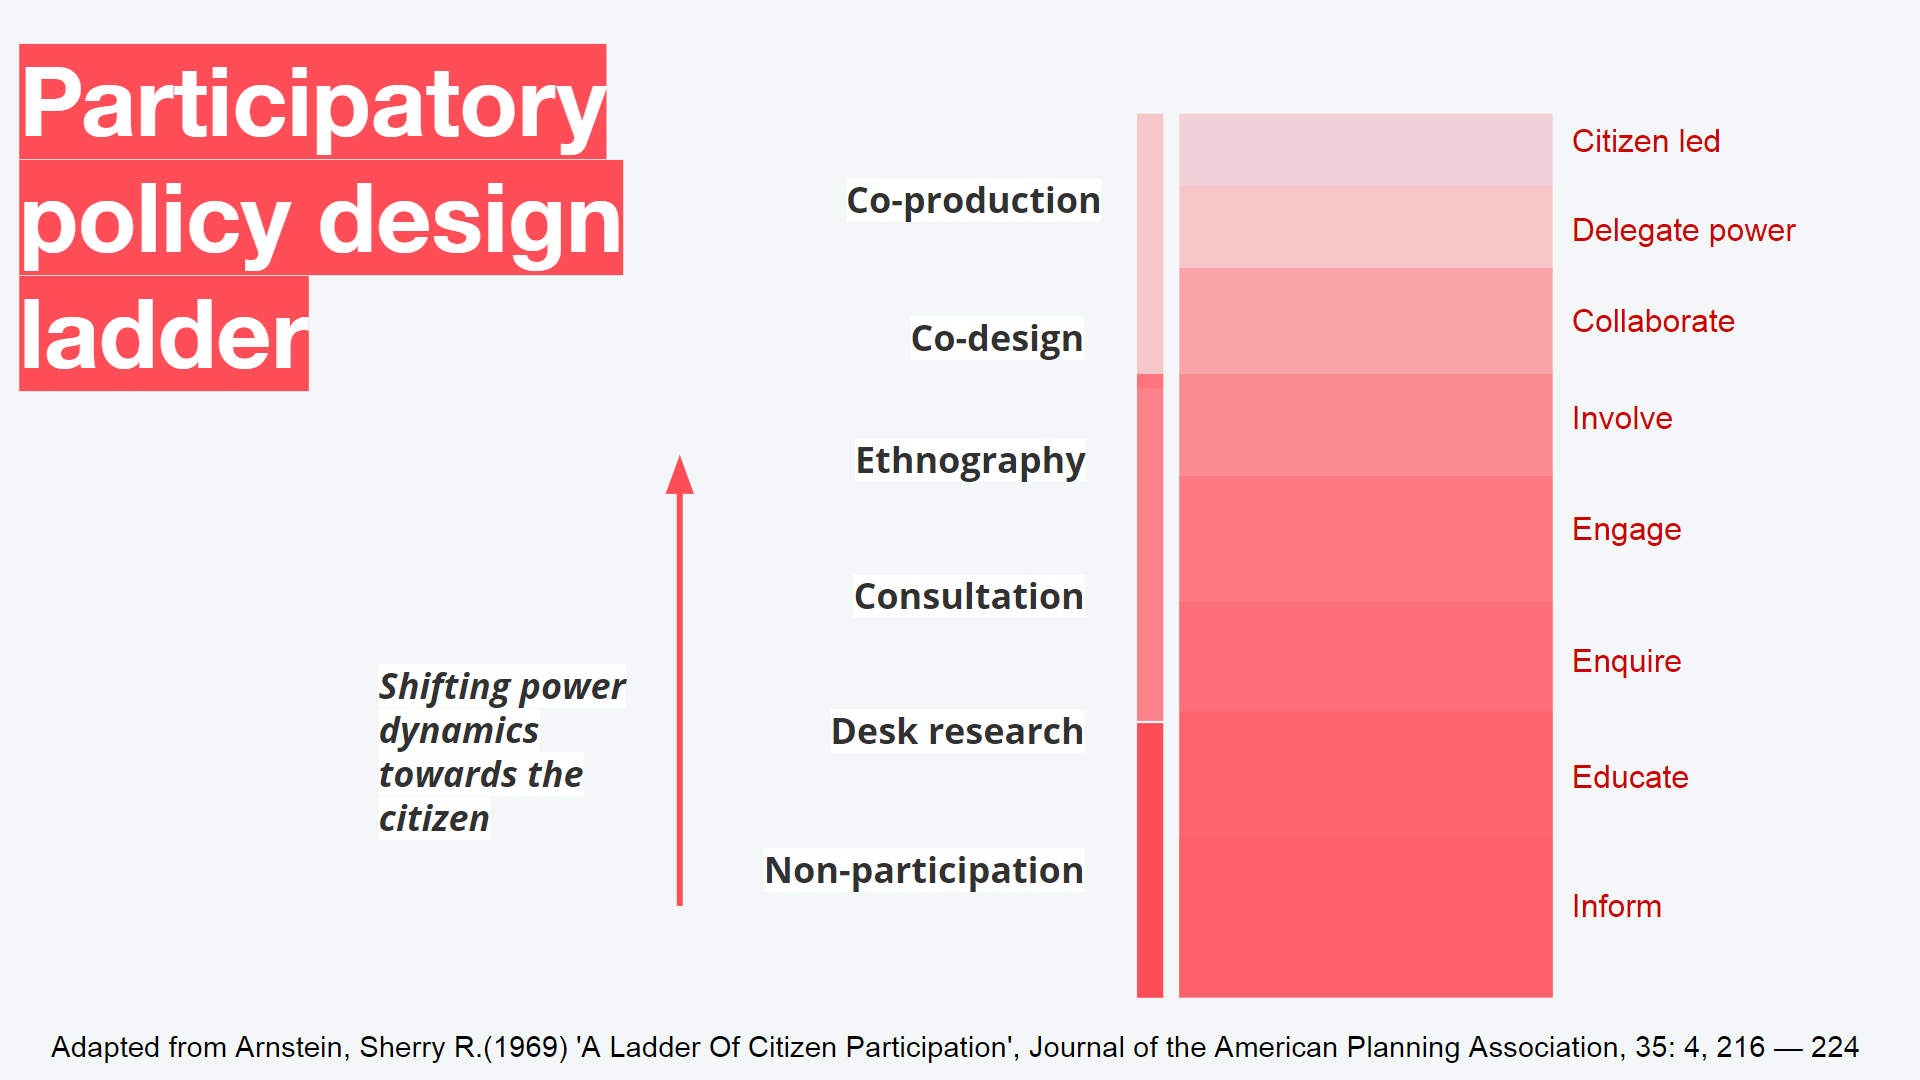 This is an image of Policy Lab's participatory policy design ladder model.